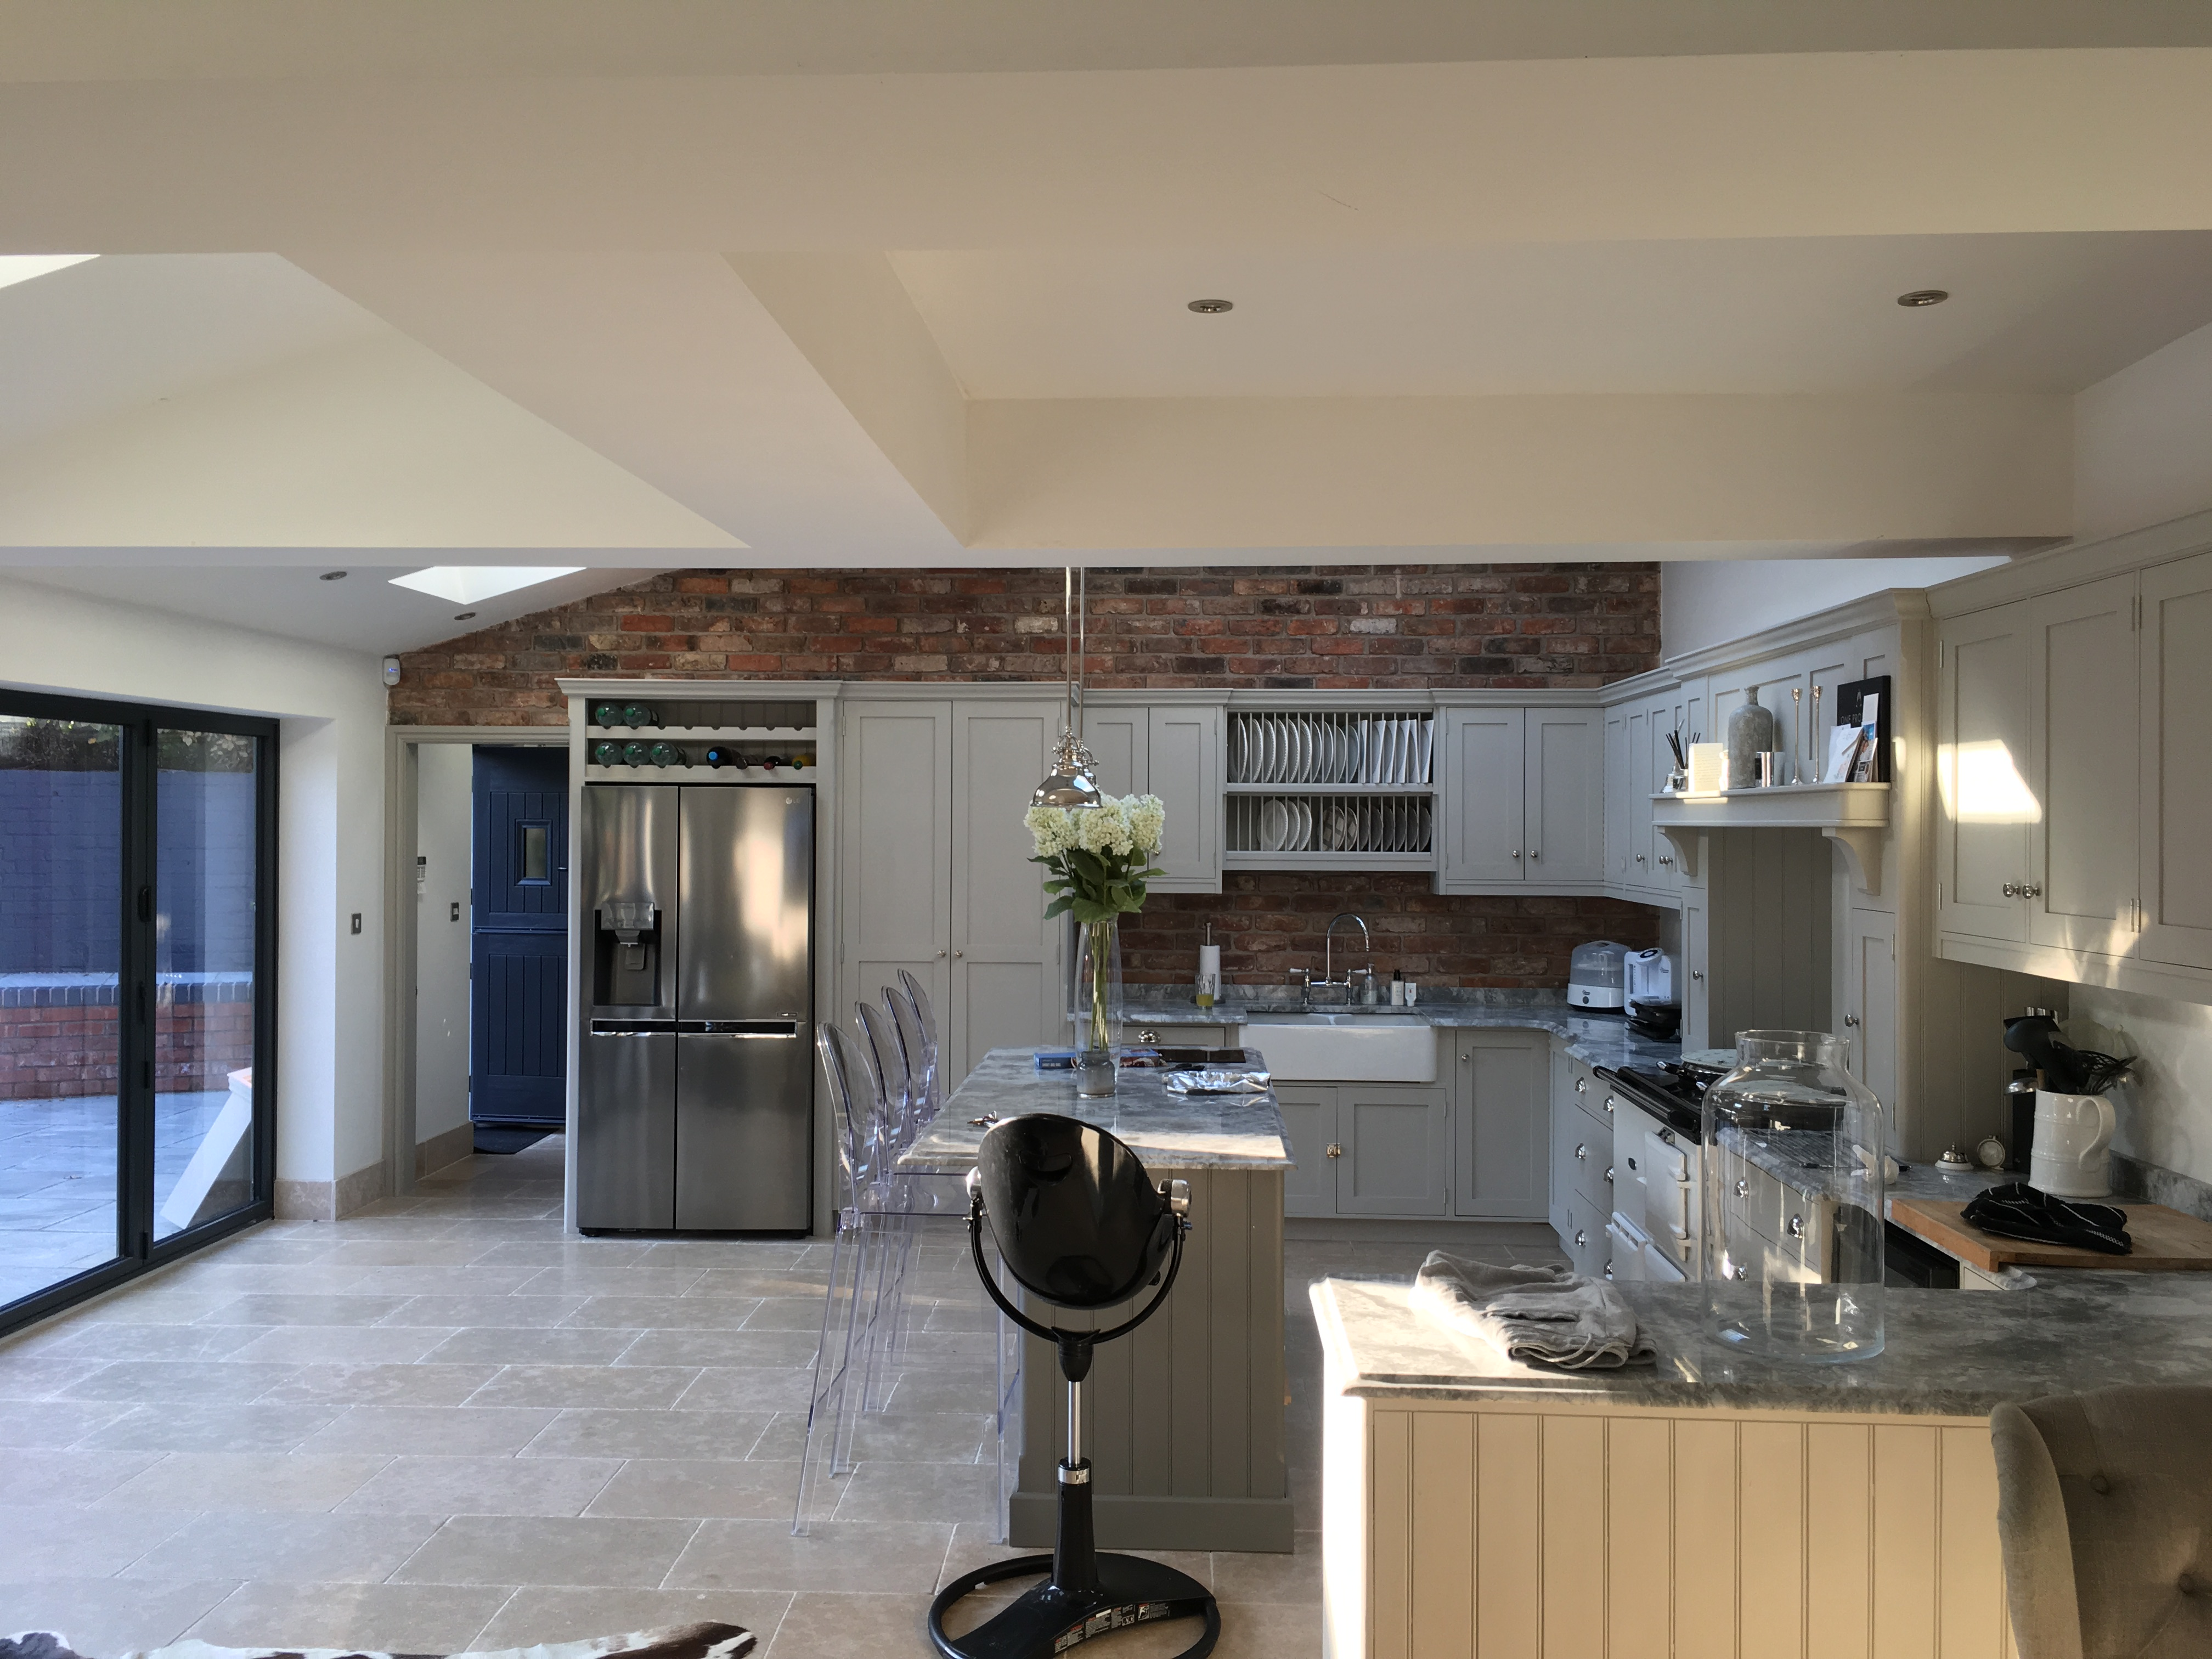 Kitchen by Dan Nickson Joinery